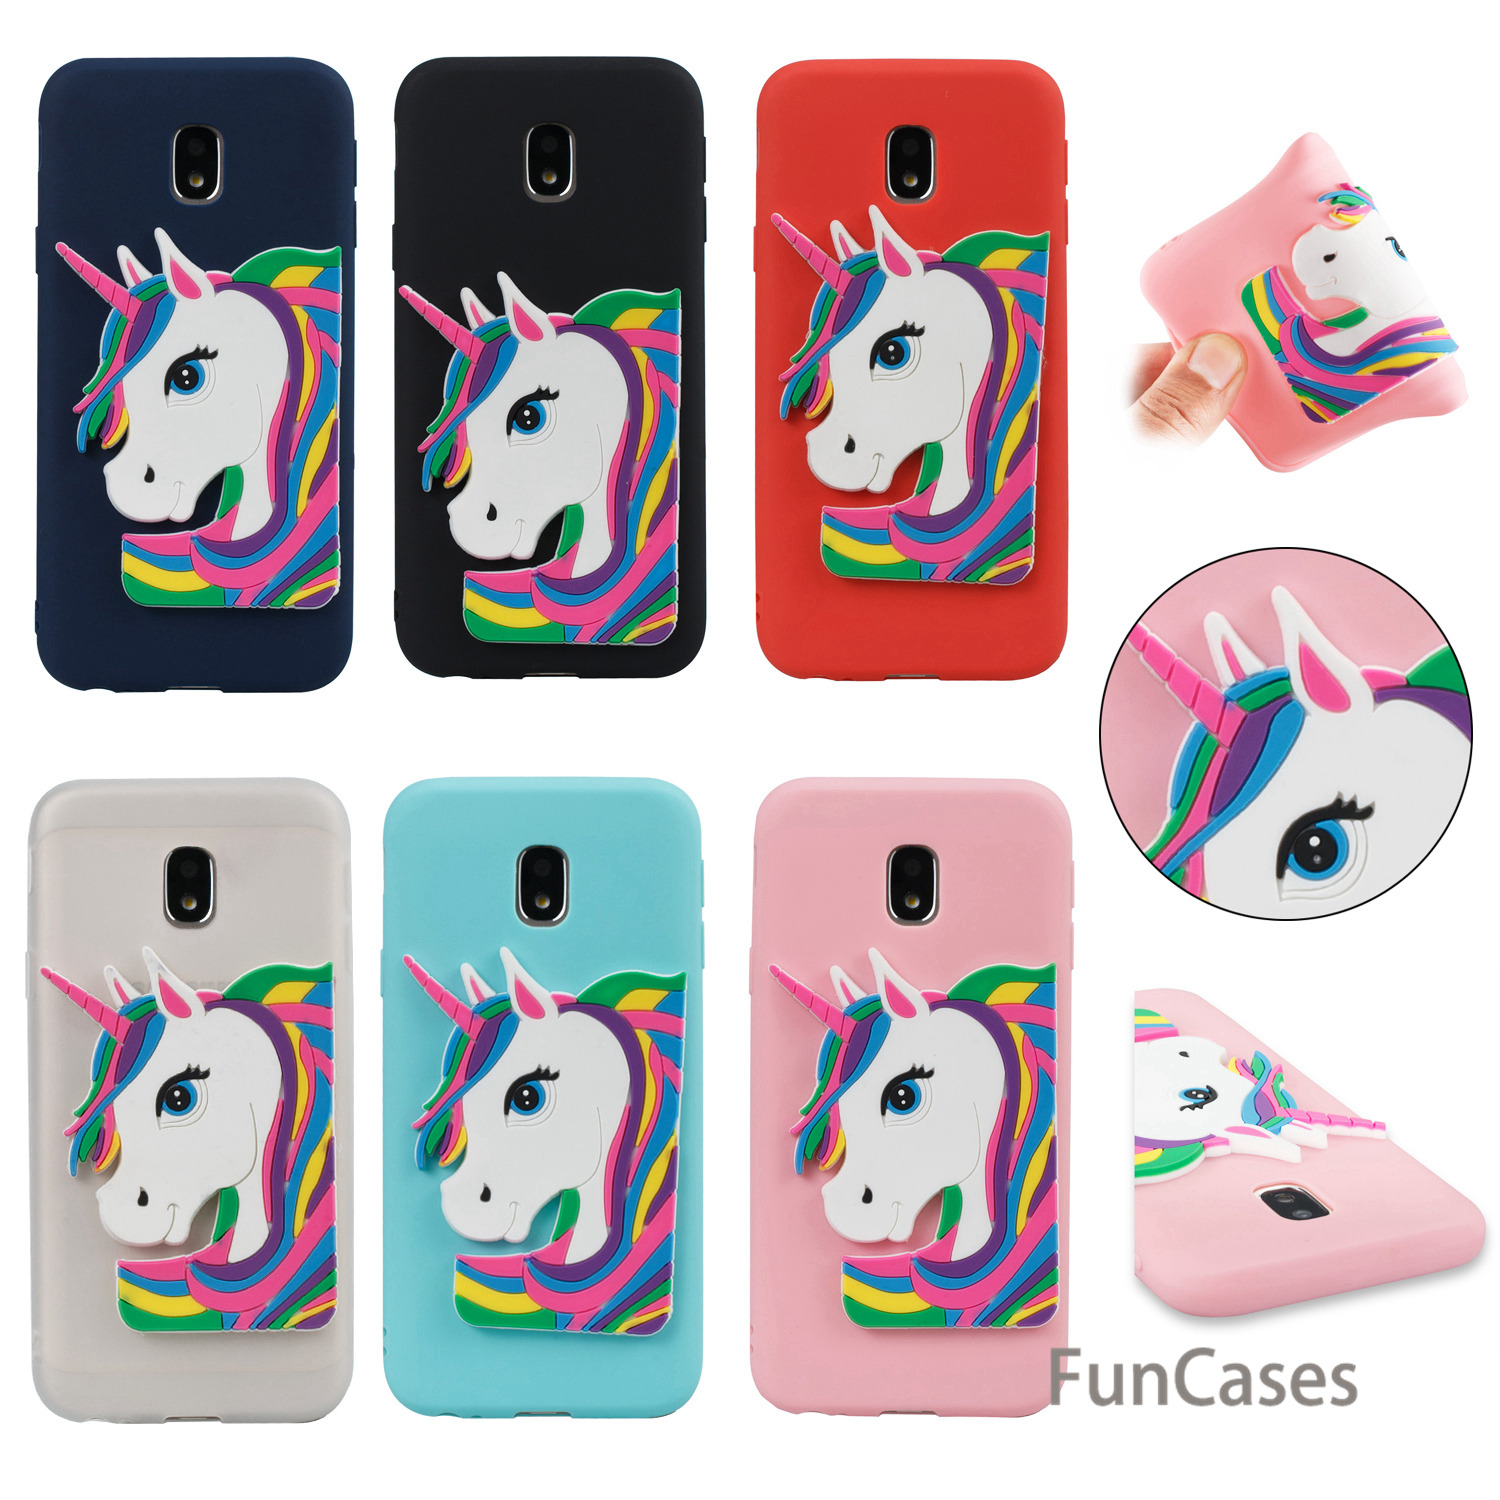 Rubber Unicorn Case sFor Celular Samsung J730 European Version Soft Silicone Back Cover Coque Samsung Galaxy J7 2017 EU Version